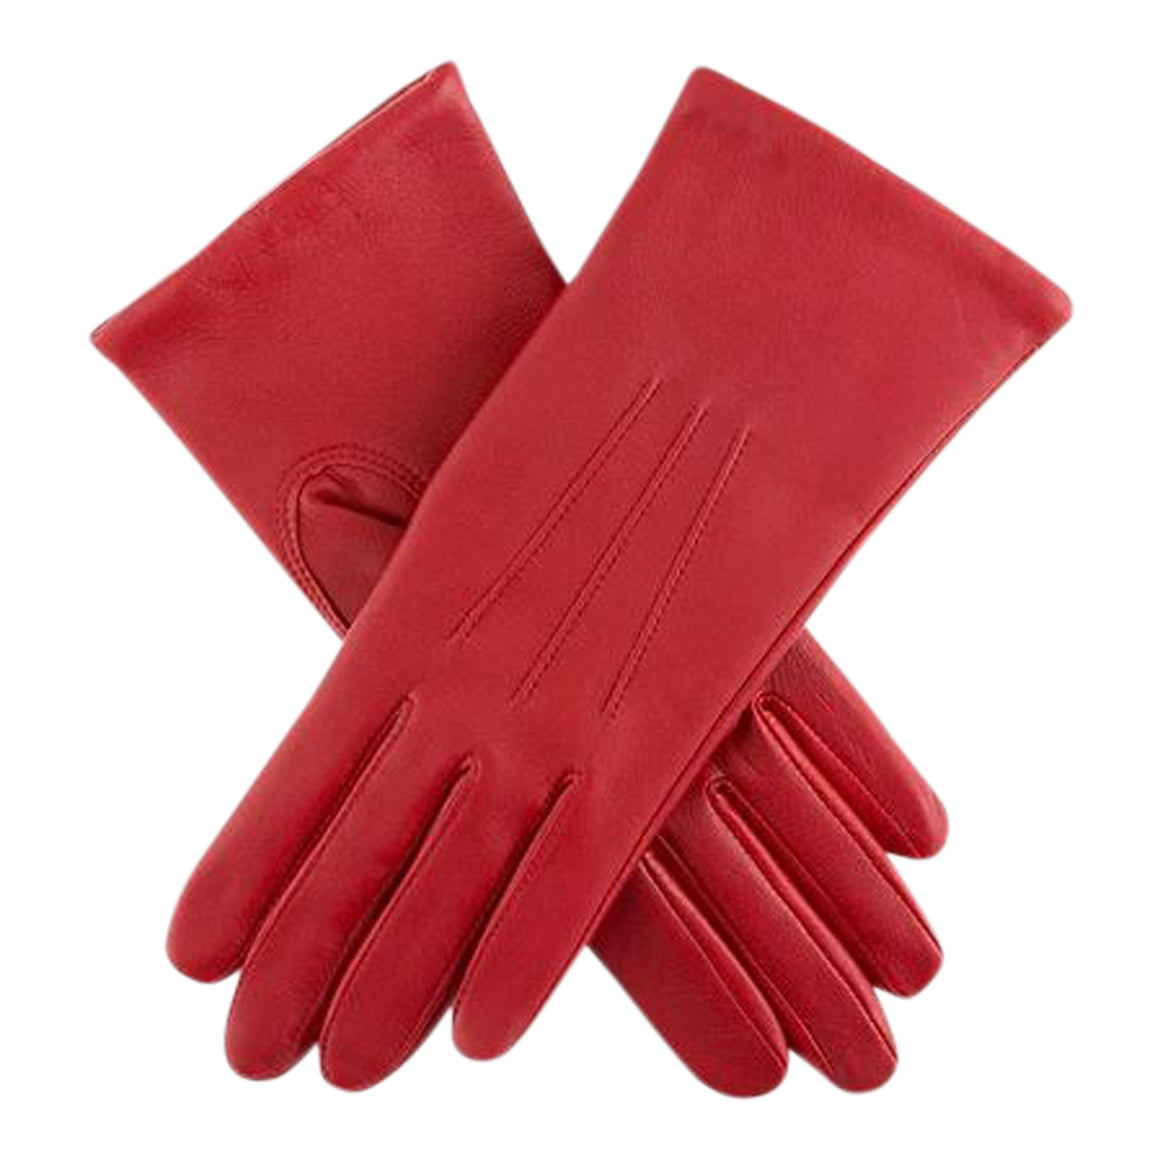 Classic Acrylic Lined Gloves for Women in Bright Red